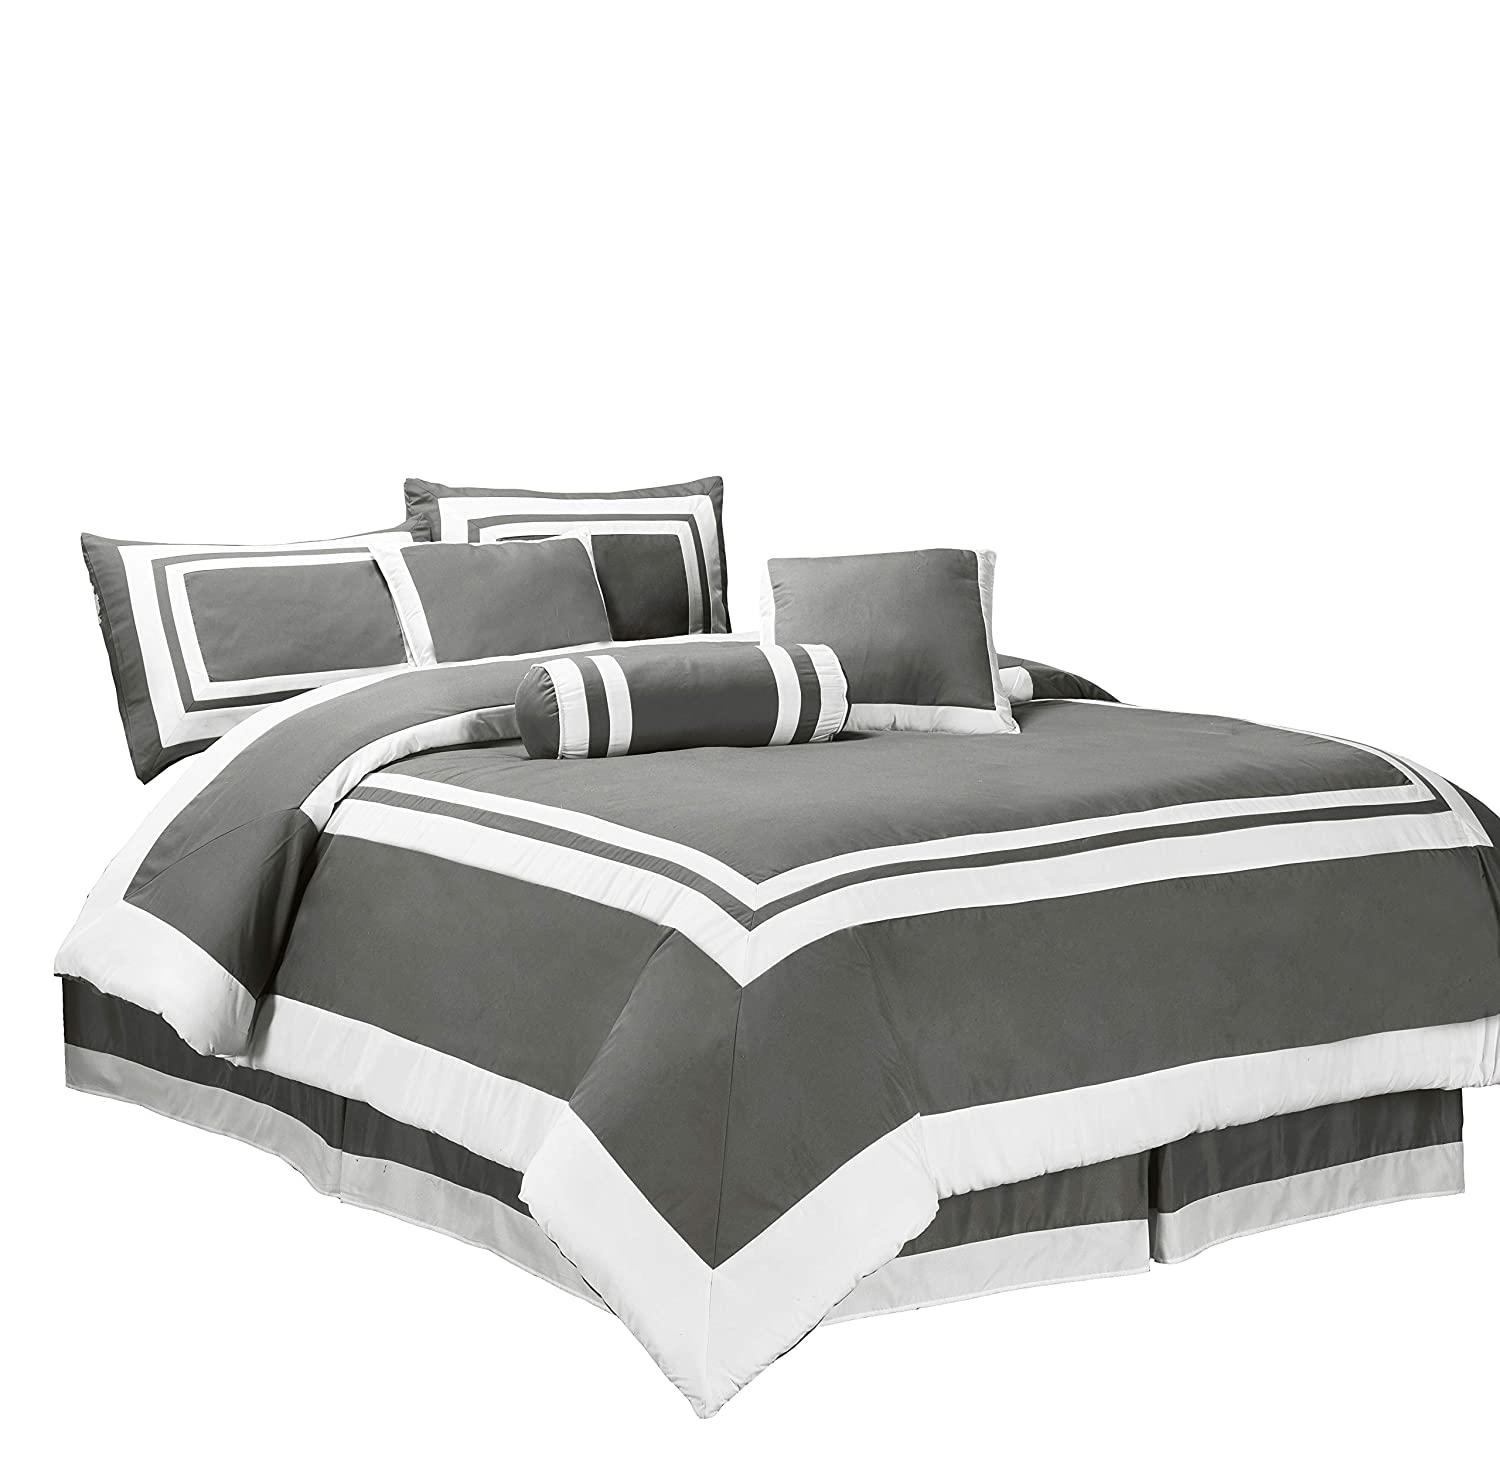 Chezmoi Collection 7 Pieces Caprice Gray/White Square Pattern Hotel Bedding Comforter Set (Full, Gray/White) Caprice-Com-Gray-Full